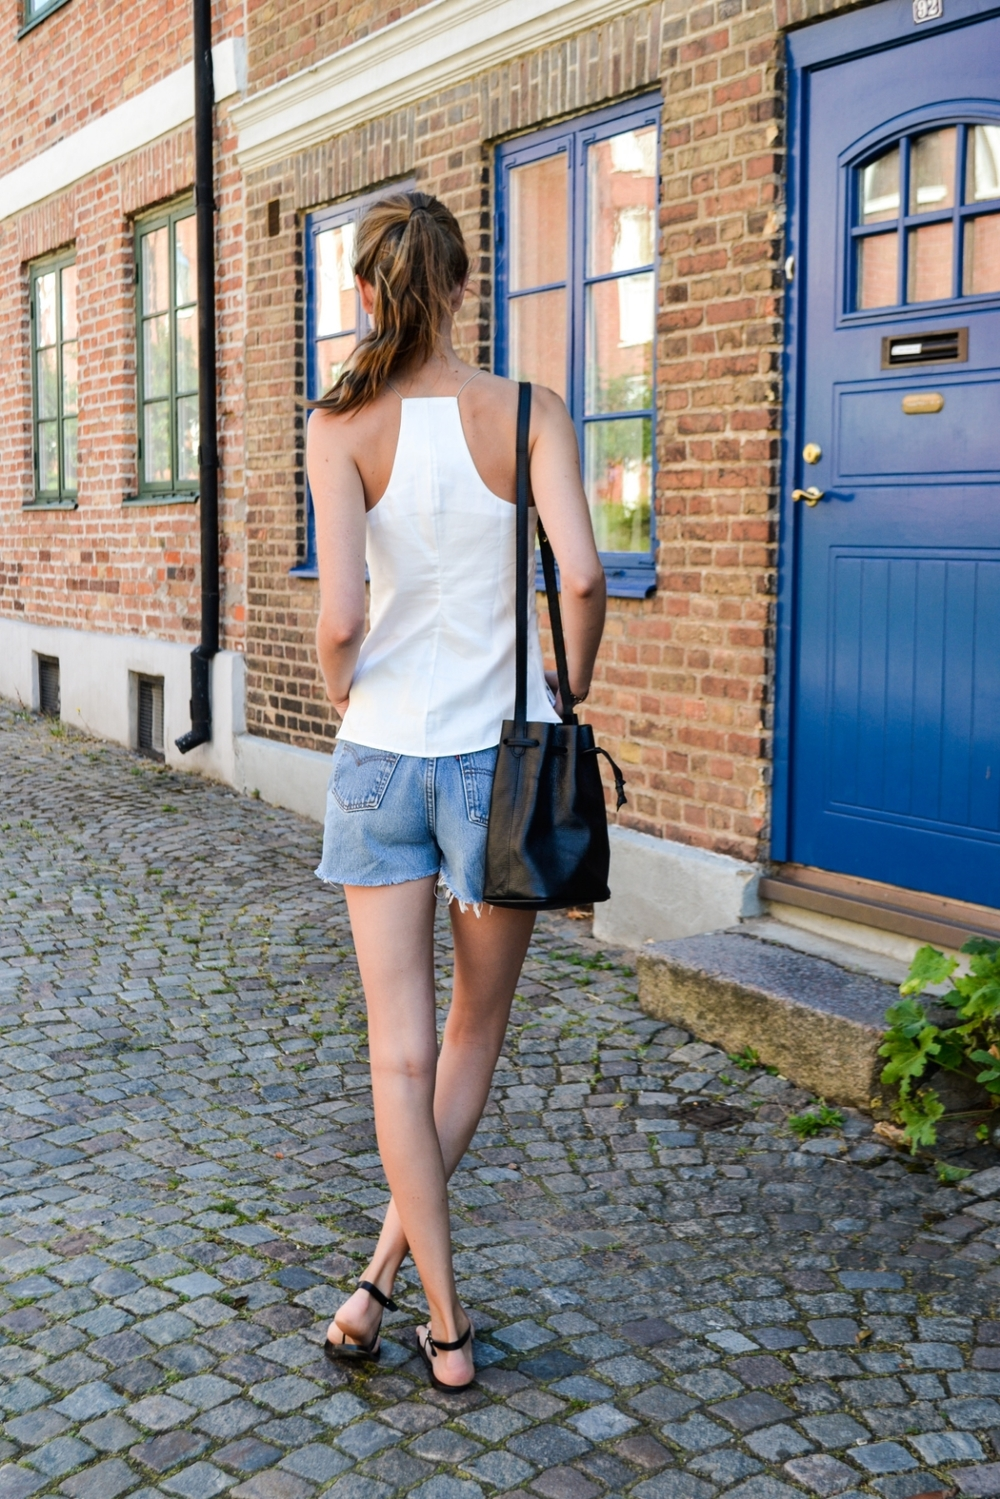 Kim models the Veryan #009 cami top, second hand Levi's & ATP Atelier sandals with her Apapa bucket bag from Moyi Moyi.